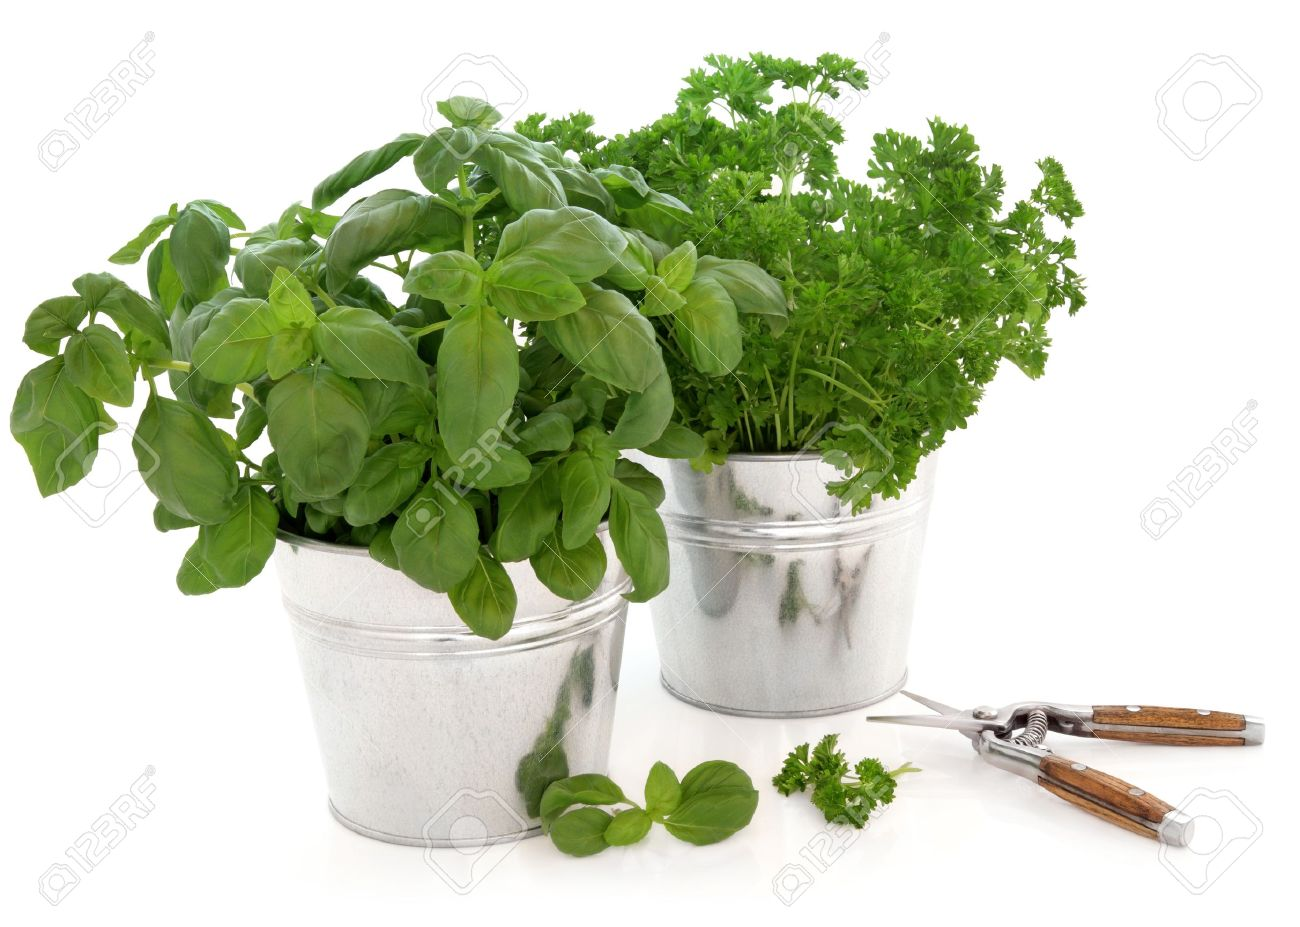 Herb pots for kitchen - Basil And Parsley Kitchen Herb Plants Growing In Aluminium Pots With Secateurs And Leaf Sprigs Over